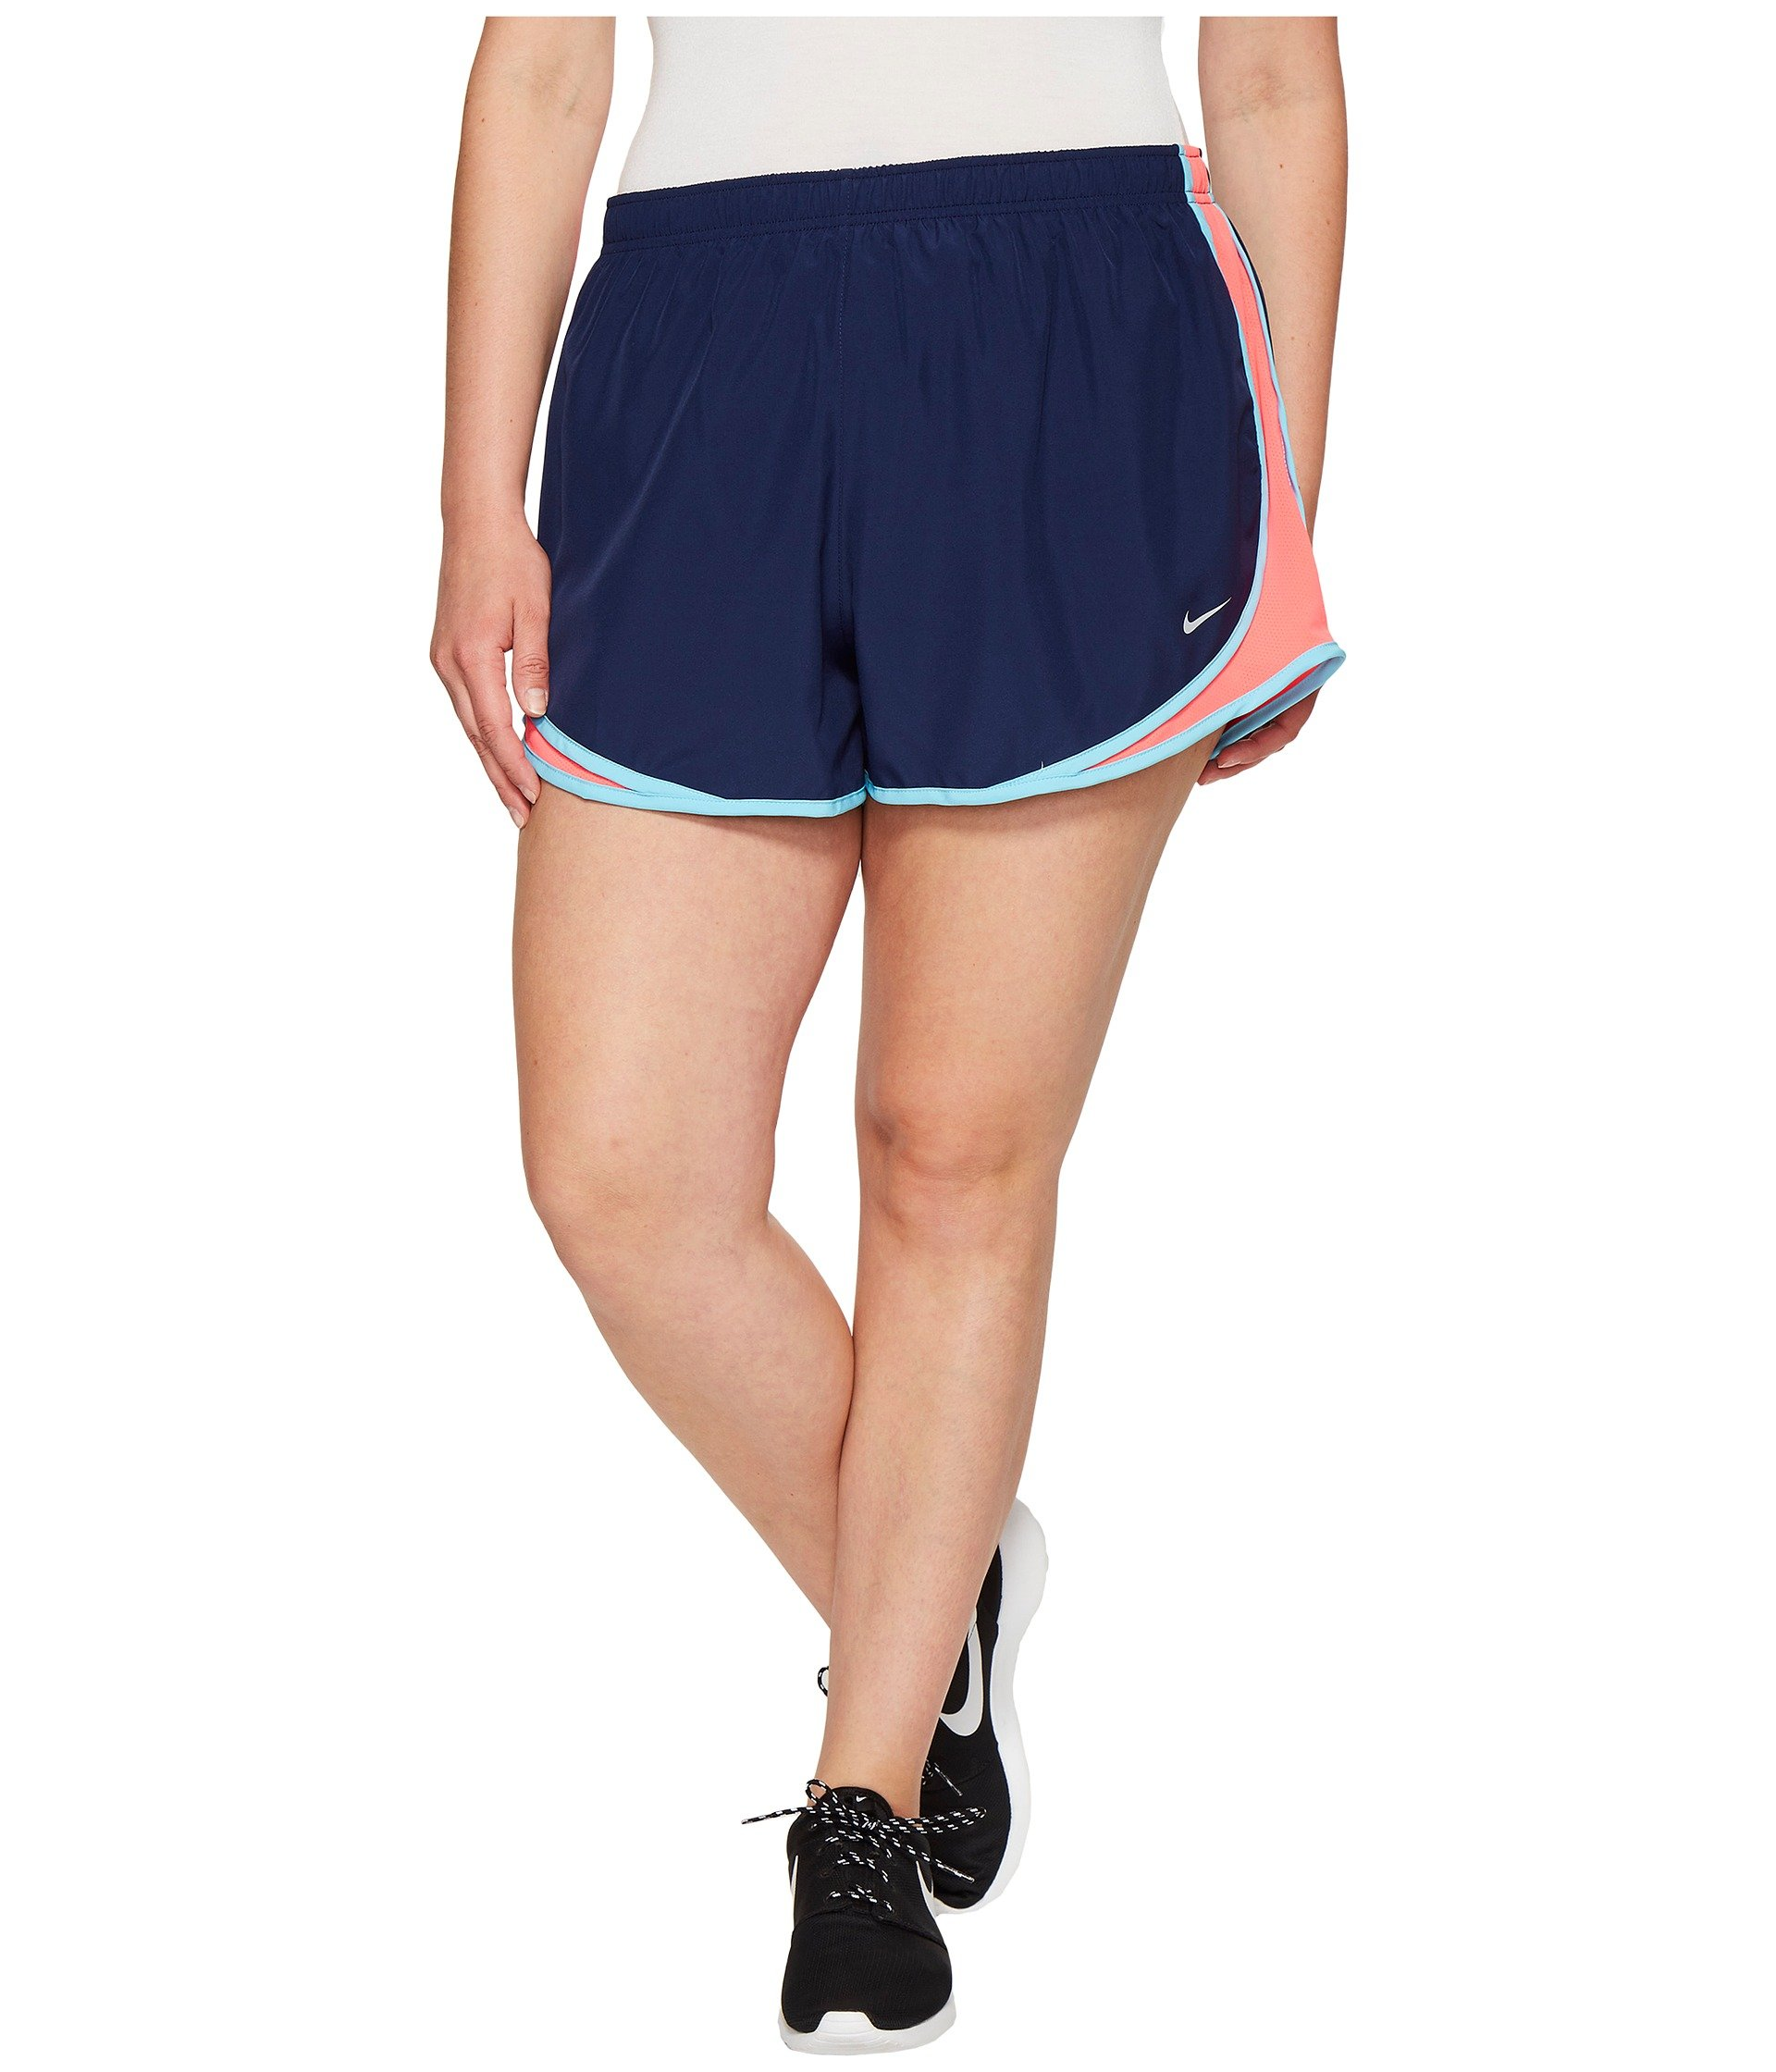 Nike Women's 3'' Plus Size Dry Tempo Running Shorts (Blue Racer Pink, 3X 3) by Nike